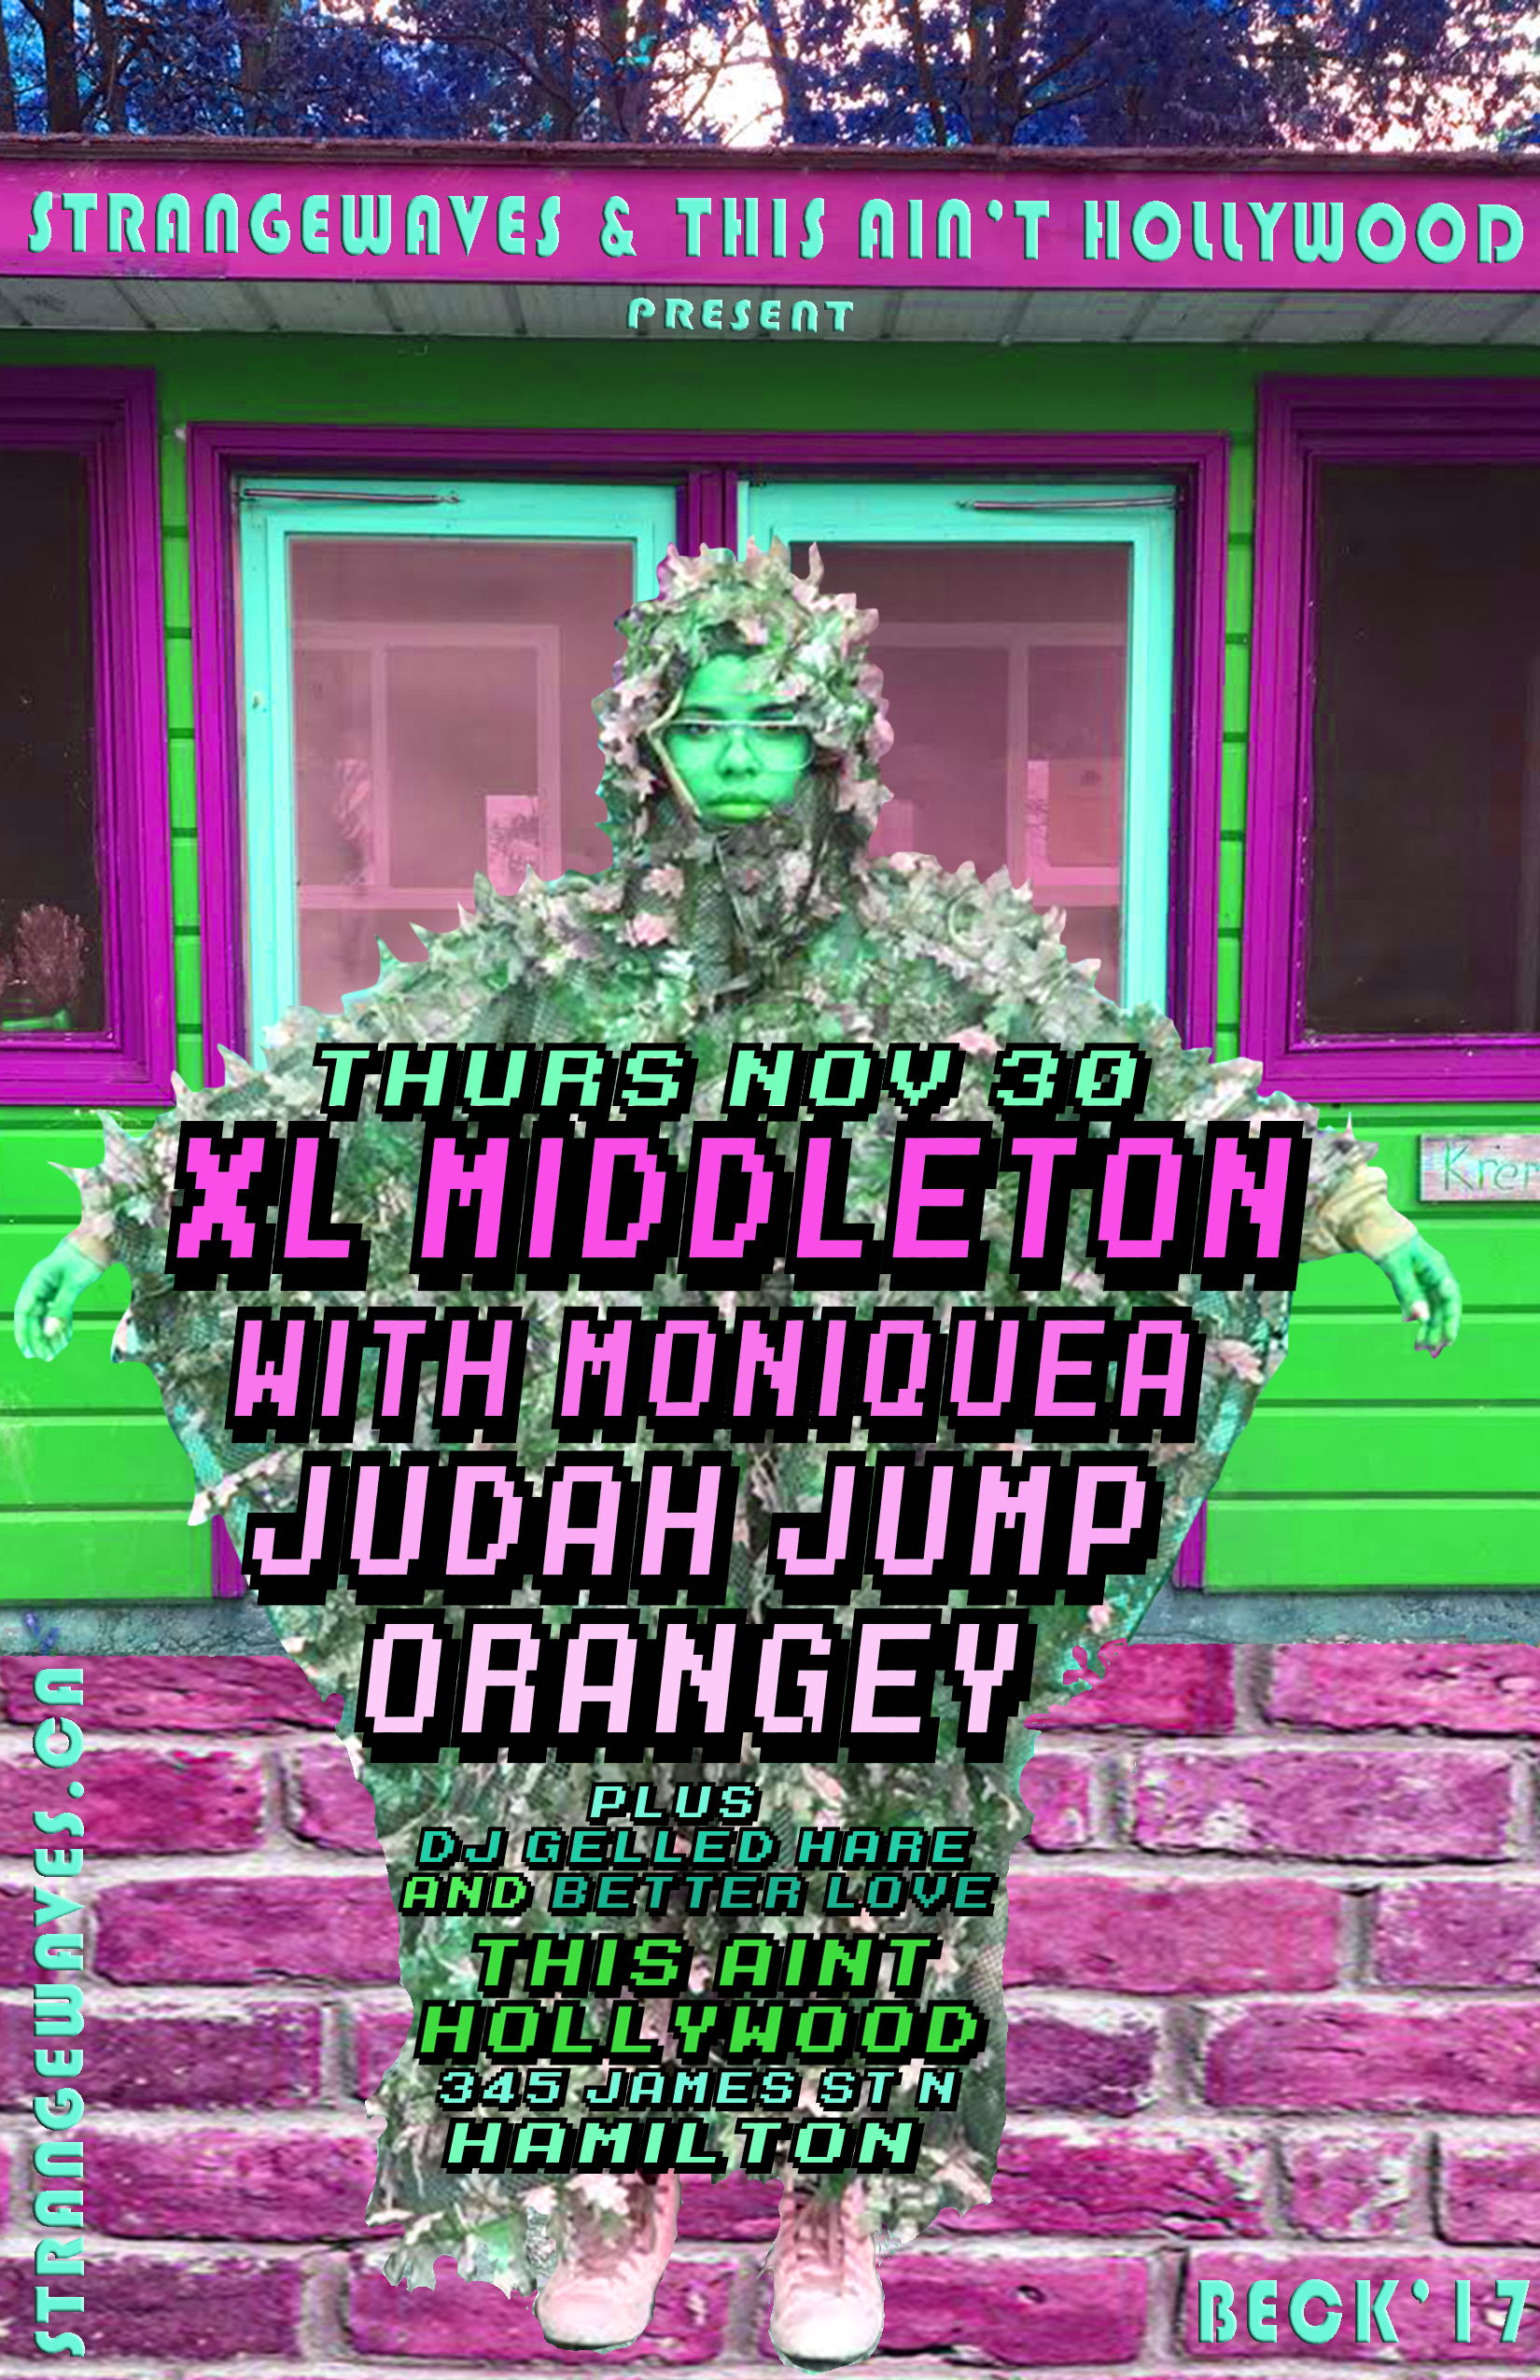 XL MIDDLETON WITH MONIQUEA + ORANGEY + JUDAH JUMP  @This Ain't Hollywood